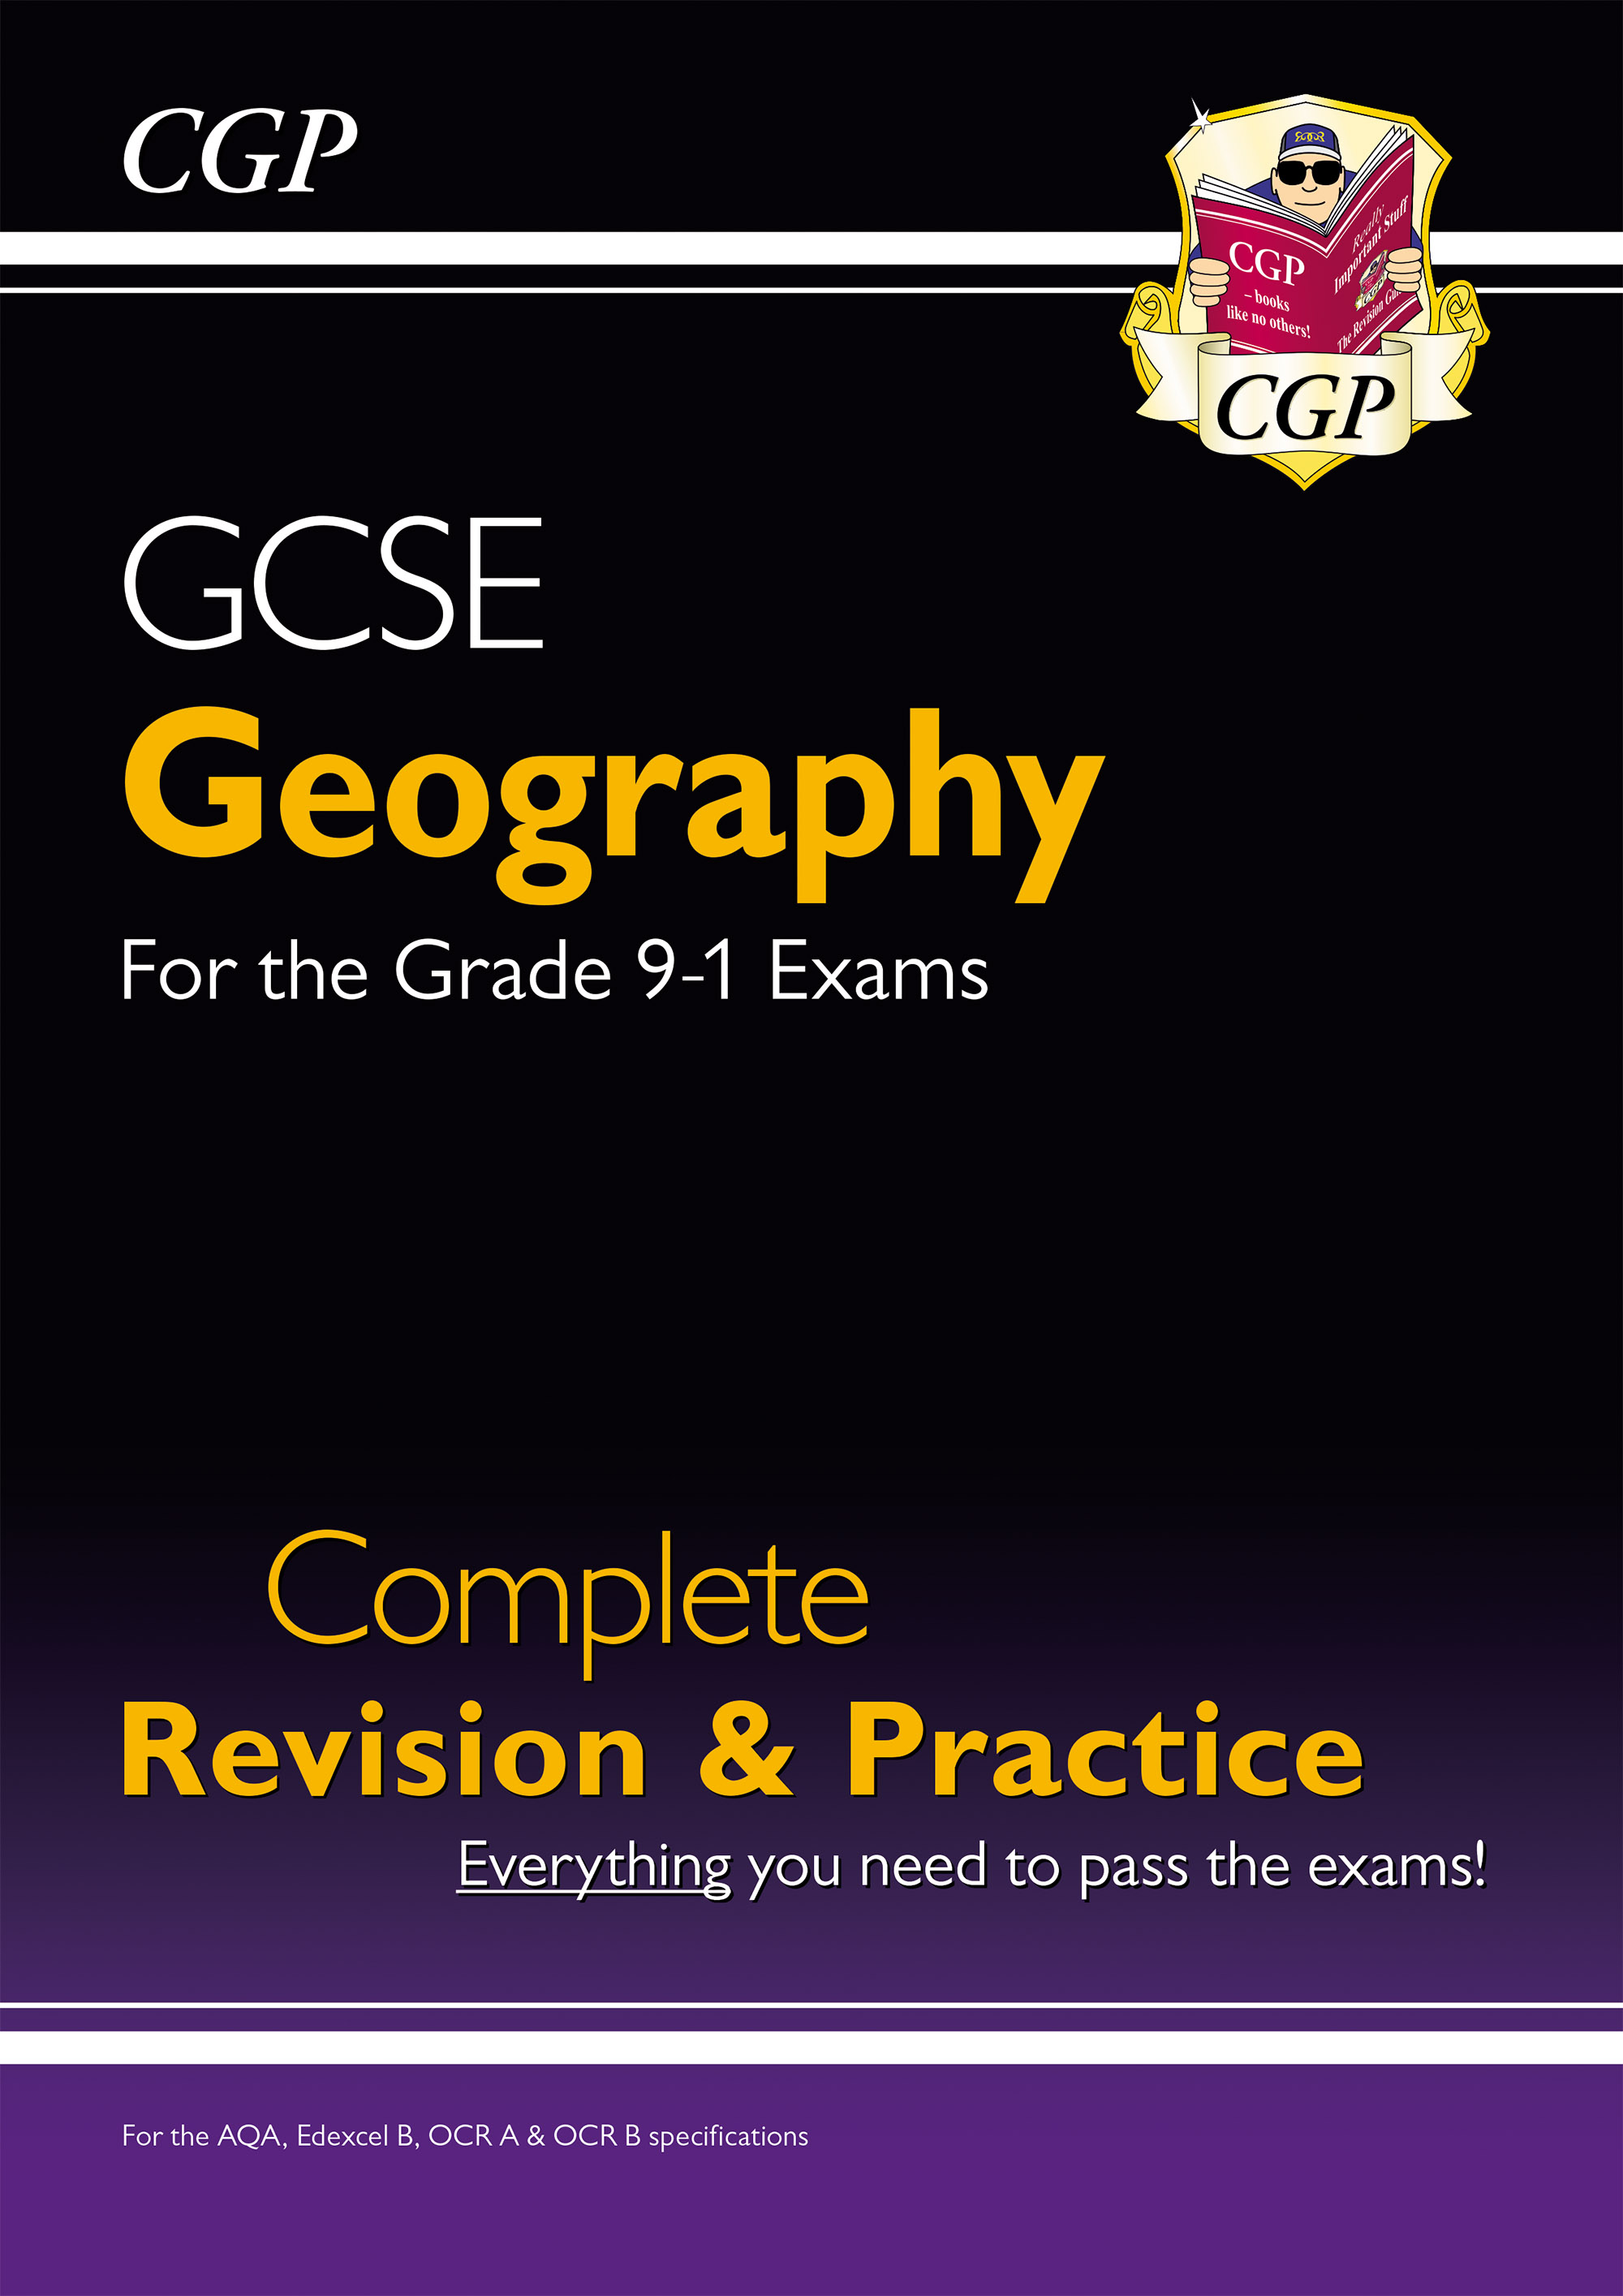 GHS44DK - New Grade 9-1 GCSE Geography Complete Revision & Practice